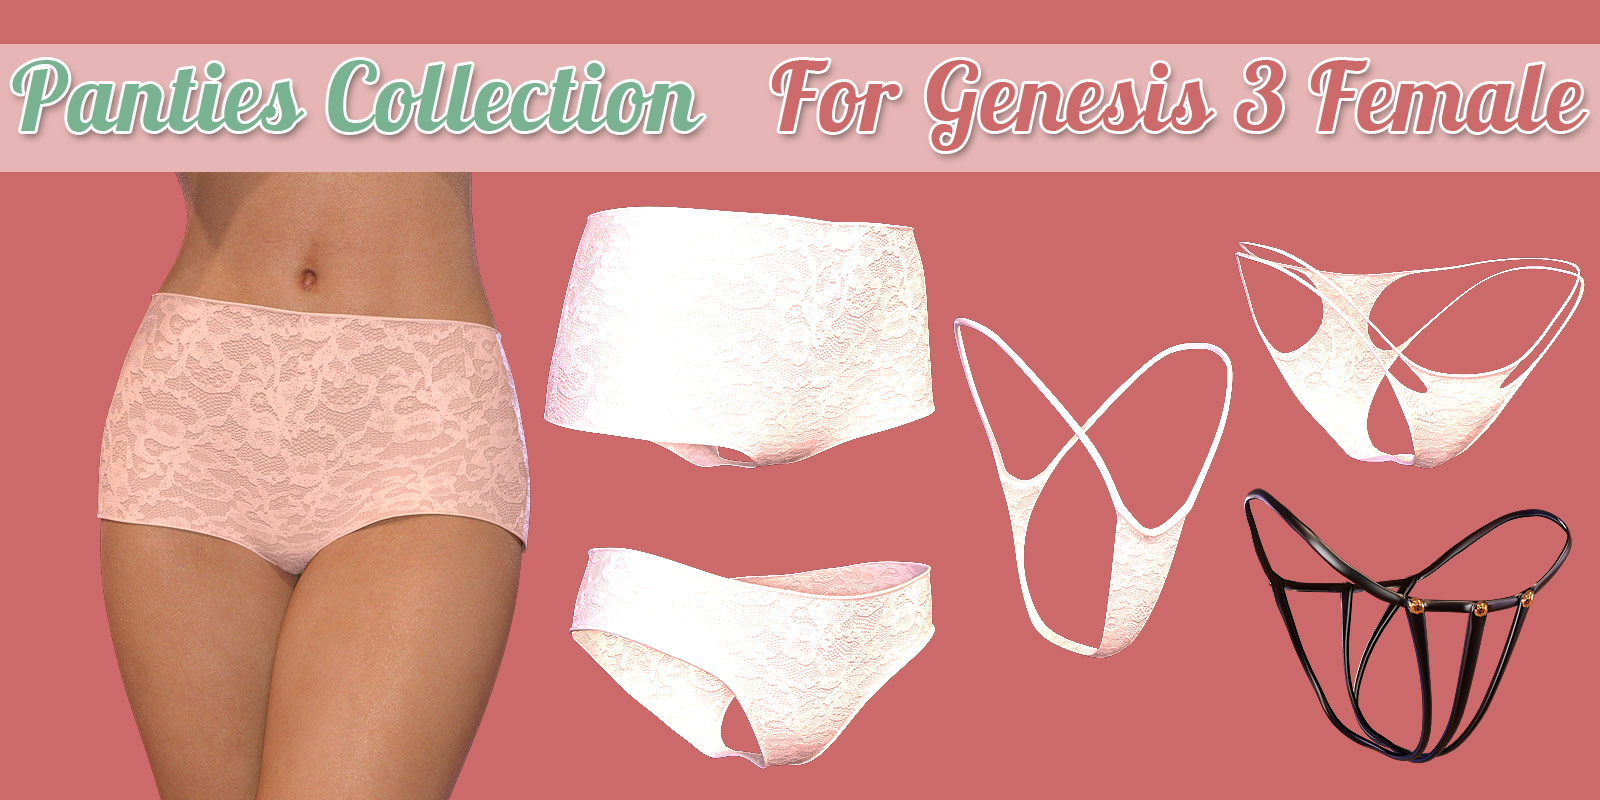 Panties Collection for G3 female(s)